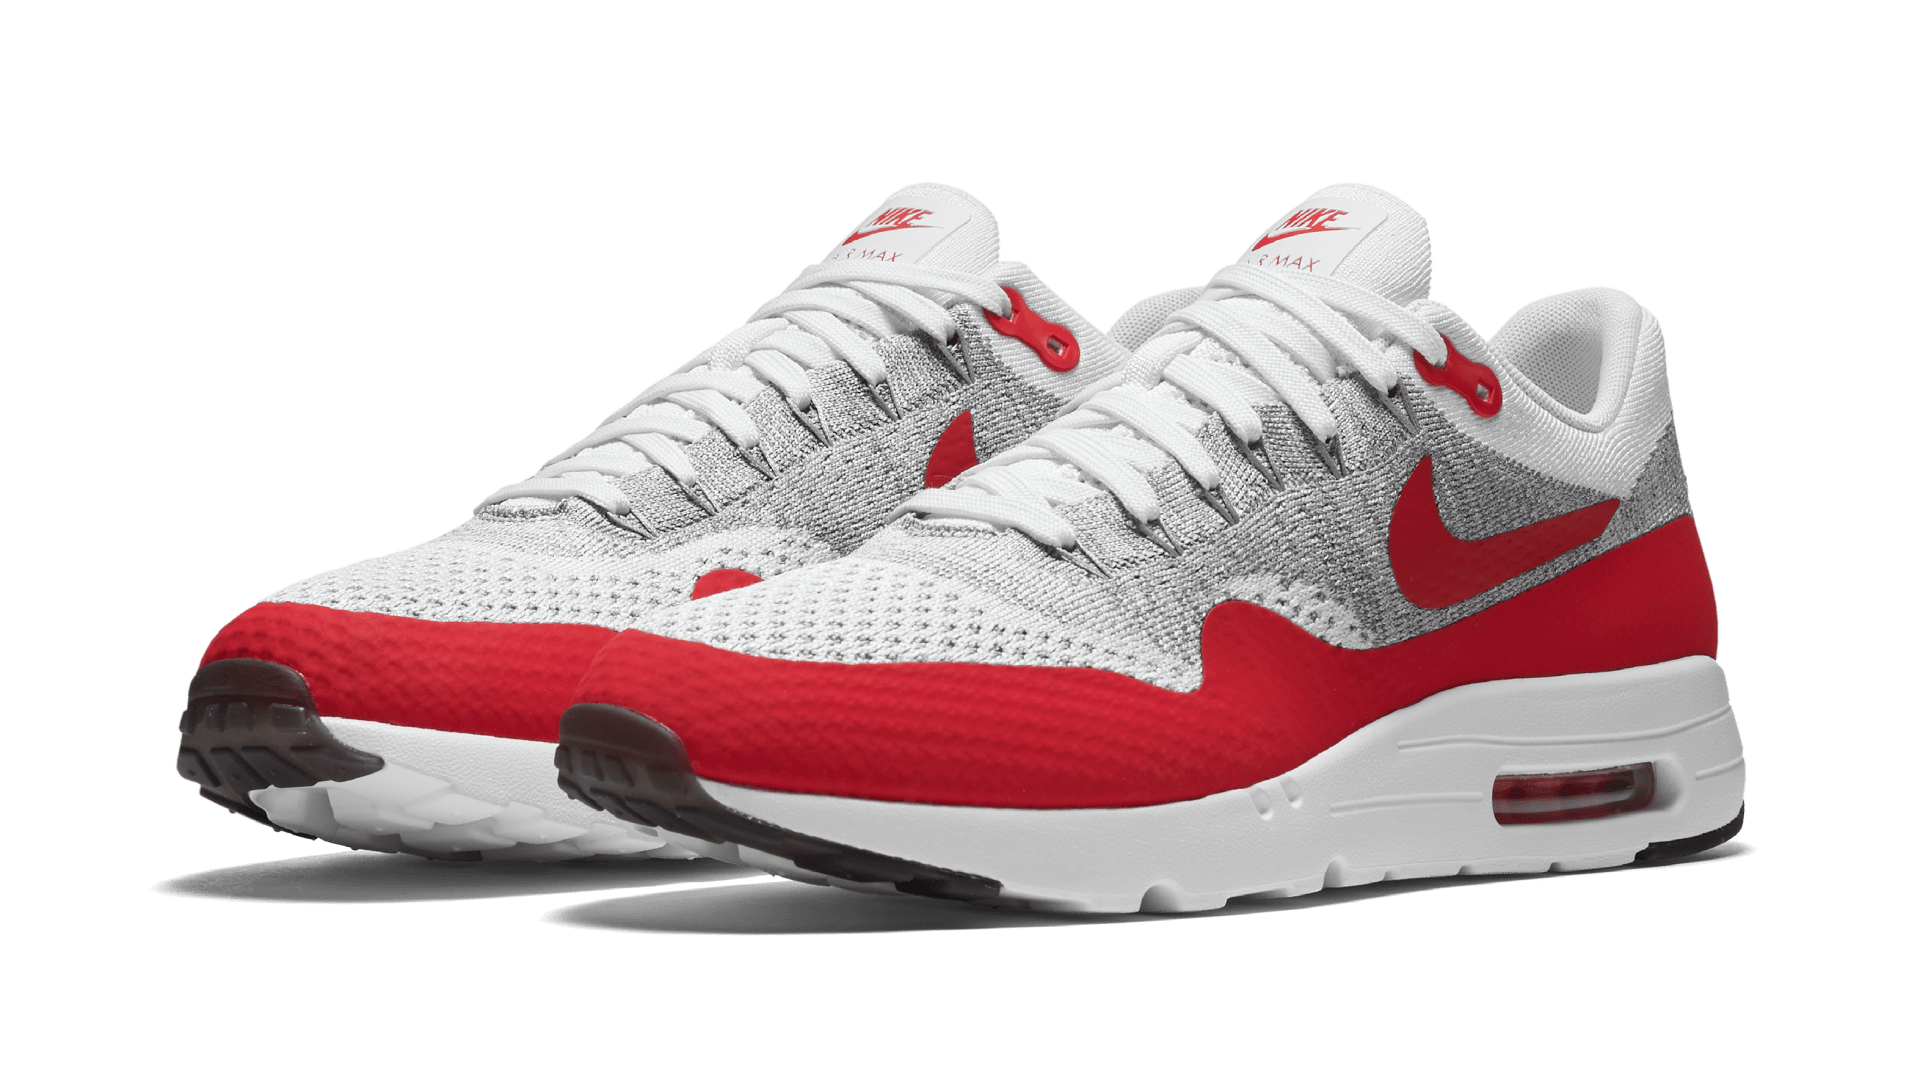 reputable site 86e49 ad6de Greatness Defined: Nike Air Max 1 Ultra Flyknit | Nice Kicks